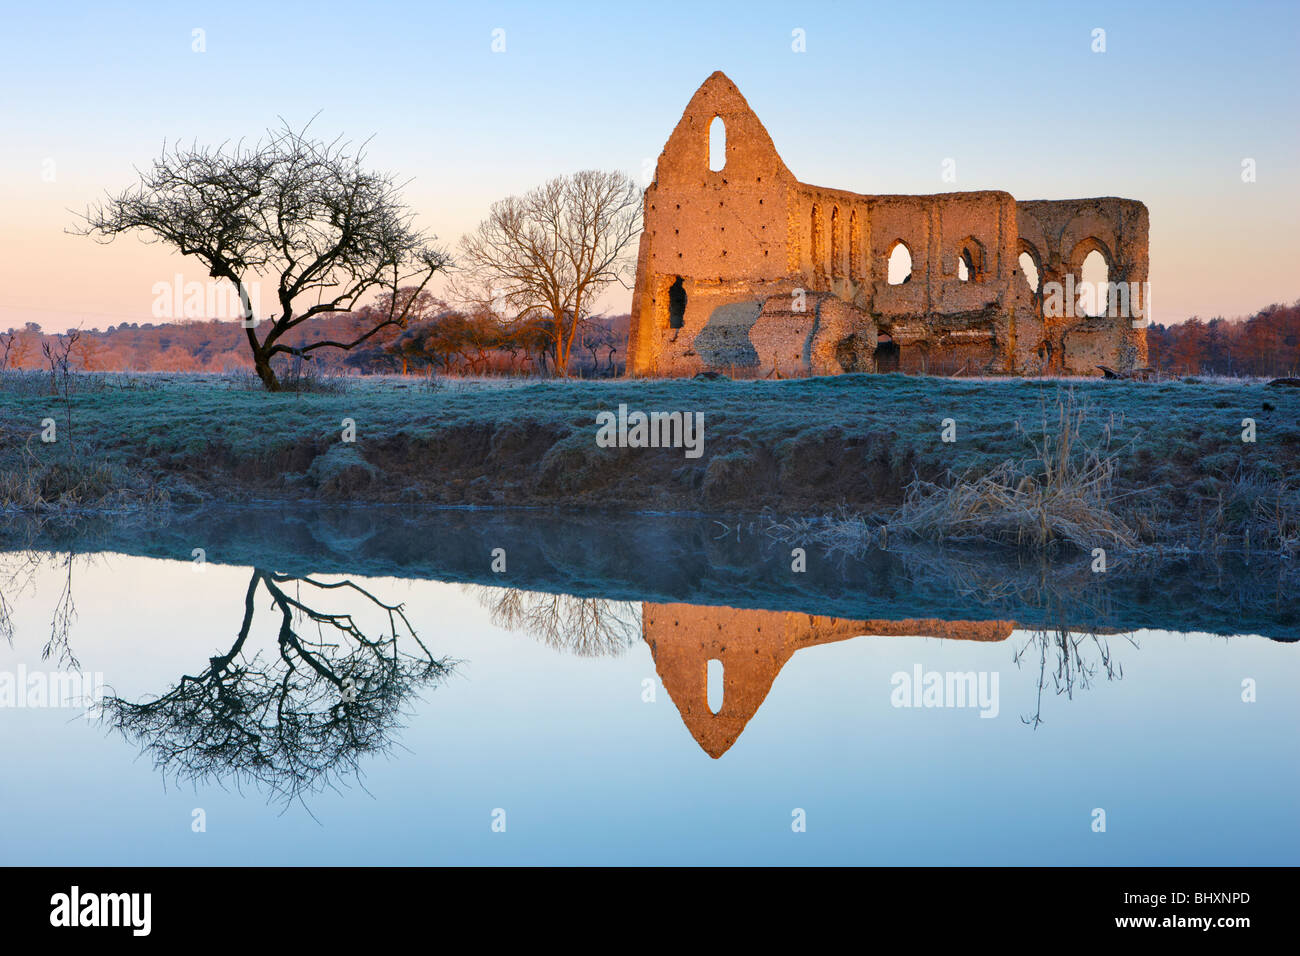 Newark Priory reflected in the River Wey Pyrford. Early sunlight catches the stonework along the frosty riverbank - Stock Image